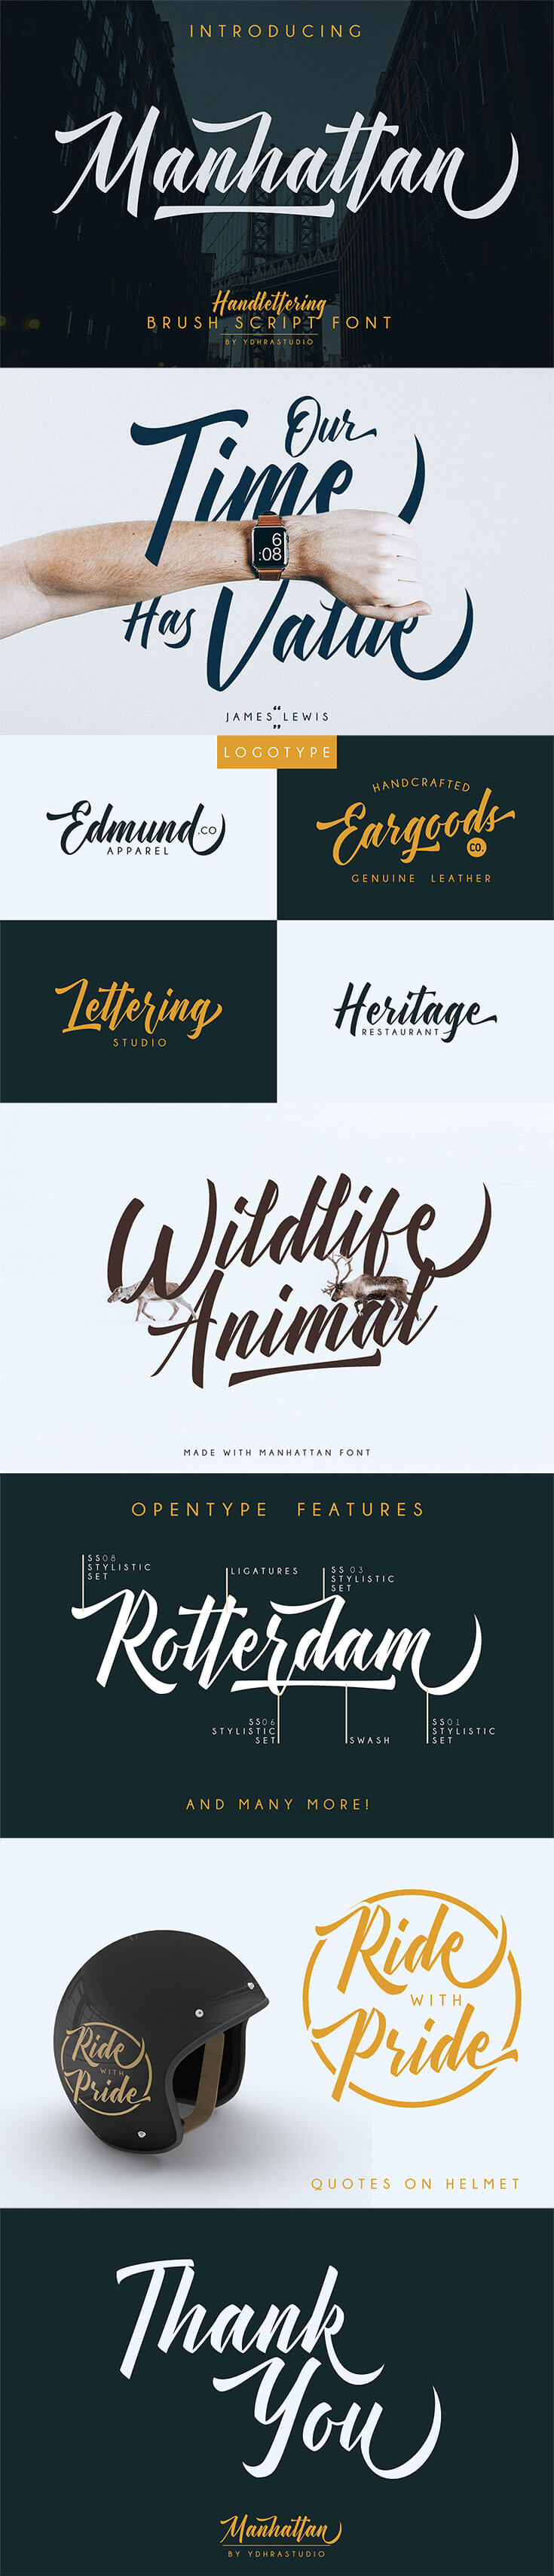 Free Manhattan #Brush #Script #Fontis a modern hand lettering font. We give you bonus a swash to make your design look more awesome with this font.Manhattan is great for Logotype, Branding Design, Logo Design, Digital Lettering Arts, T-Shirt/Apparel, Poster, Magazine, Signs, Advertising Design, and any hand-lettered needs.